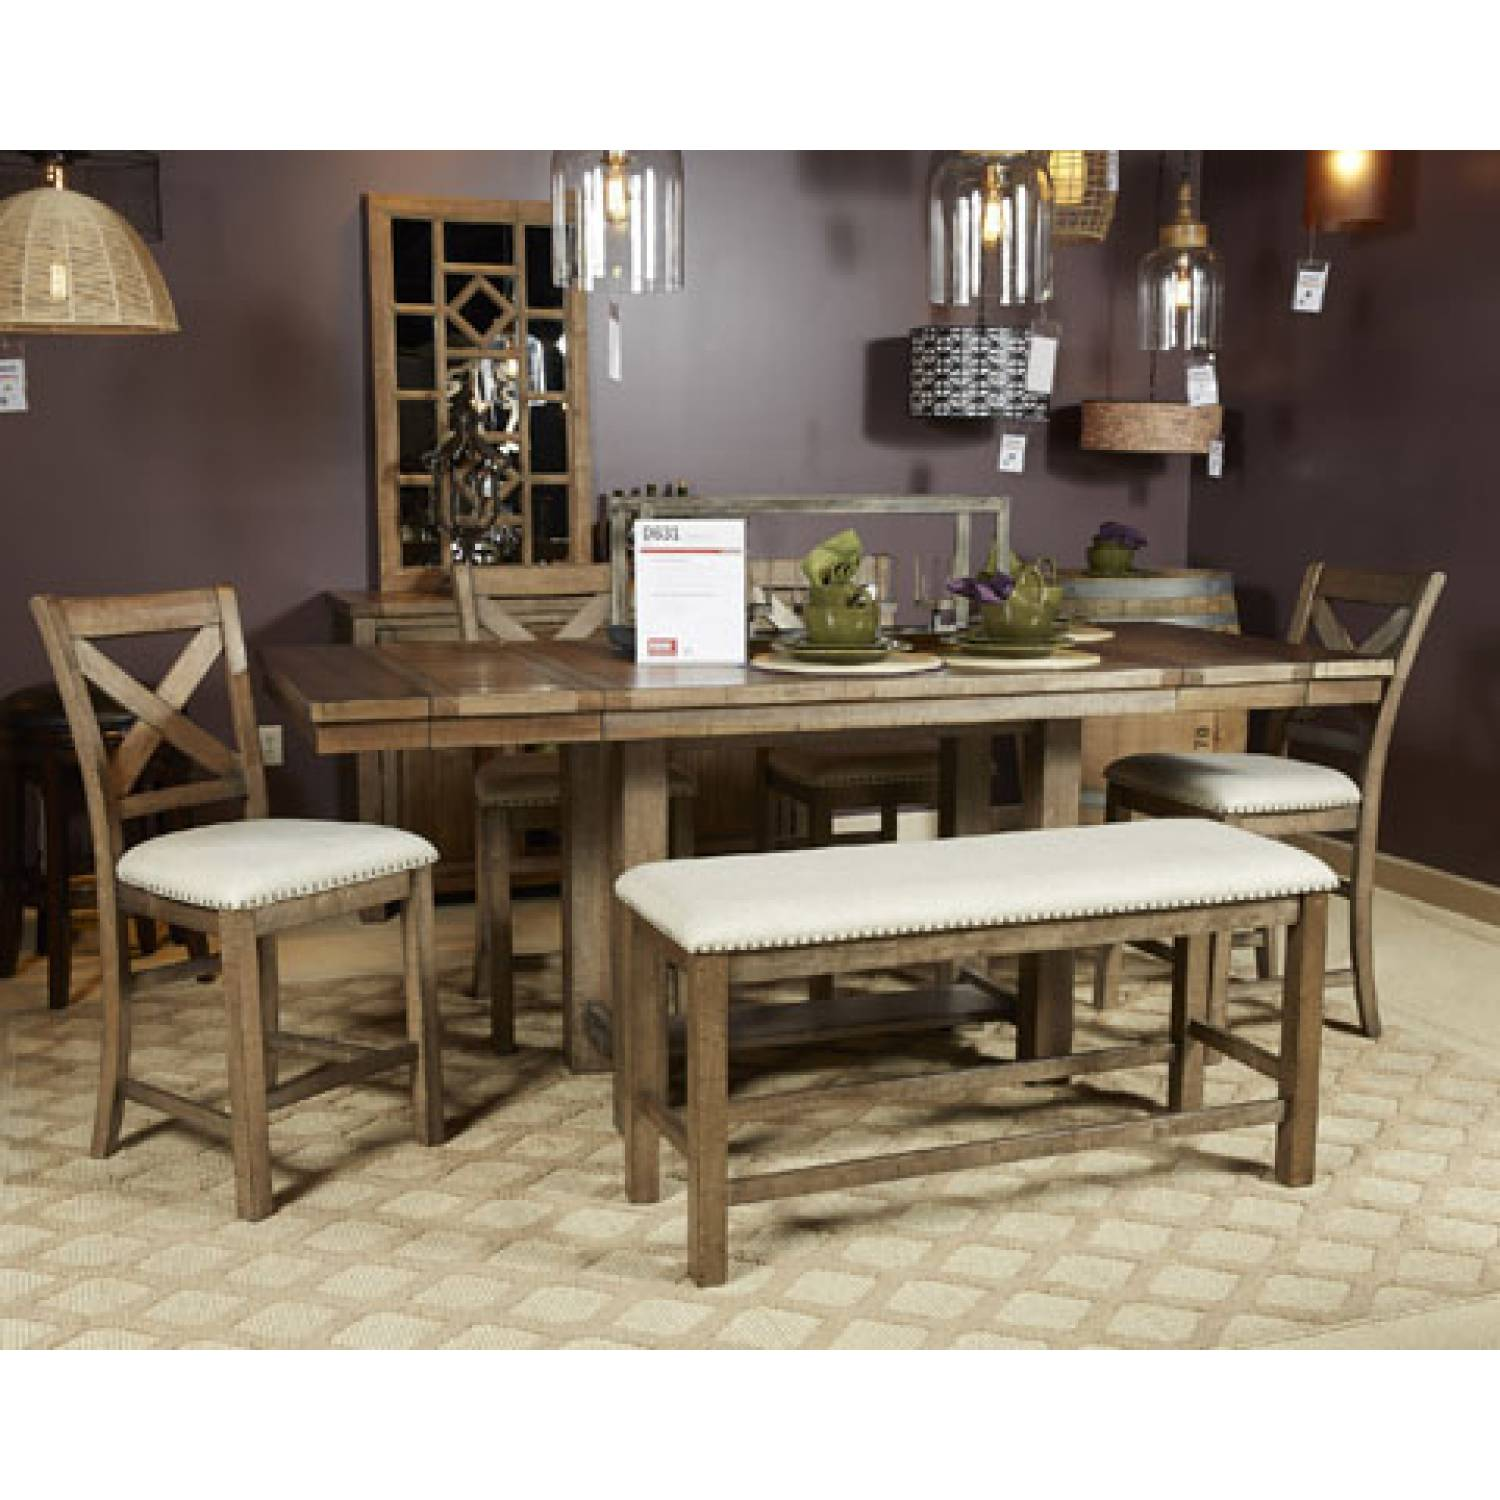 100 Pc Bench Better Homes And Gardens Mercer Dining  : 9398 1500x1500 from 45.77.175.33 size 1500 x 1500 jpeg 172kB